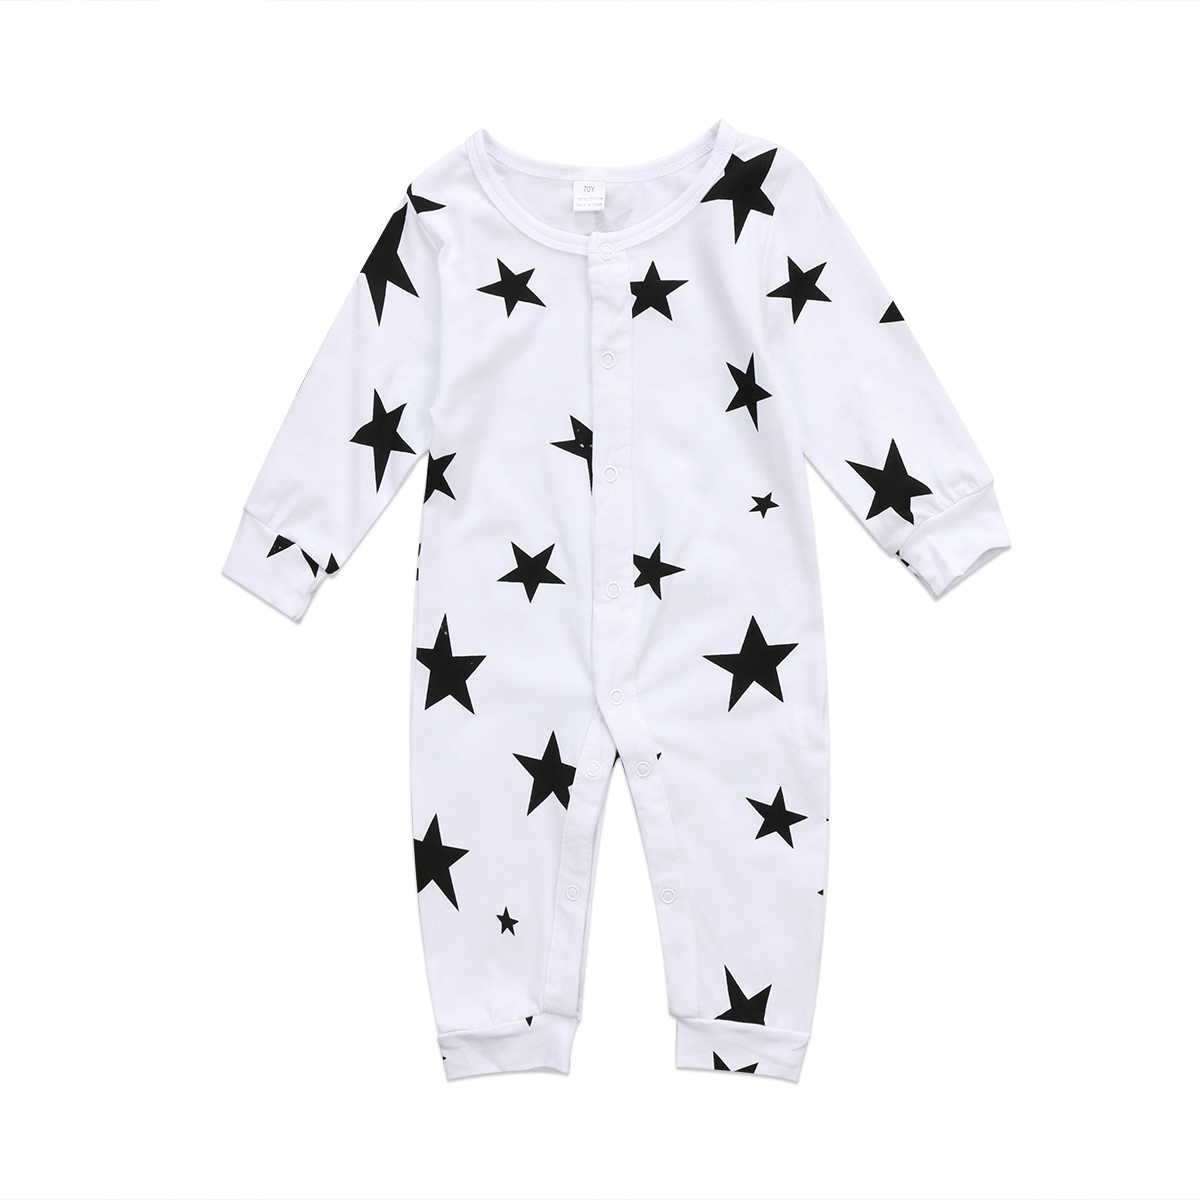 Baby Boy Girls Infant Star Print   Romper   Long Sleeve Jumpsuit Playsuit Sunsuit Outfits Clothes